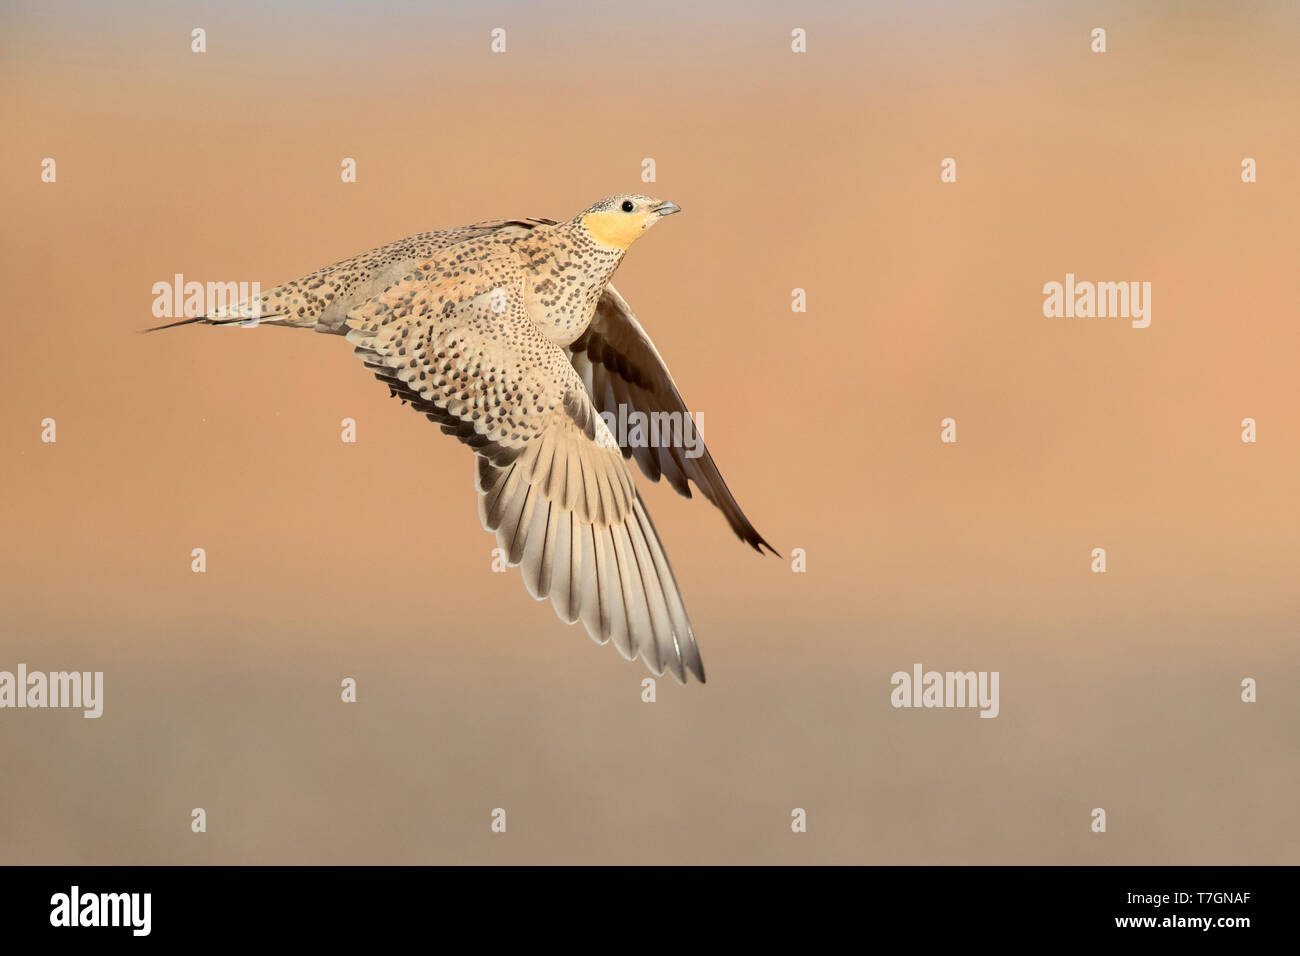 Spotted Sandgrouse (Pterocles senegallus), adult female in flight Stock Photo